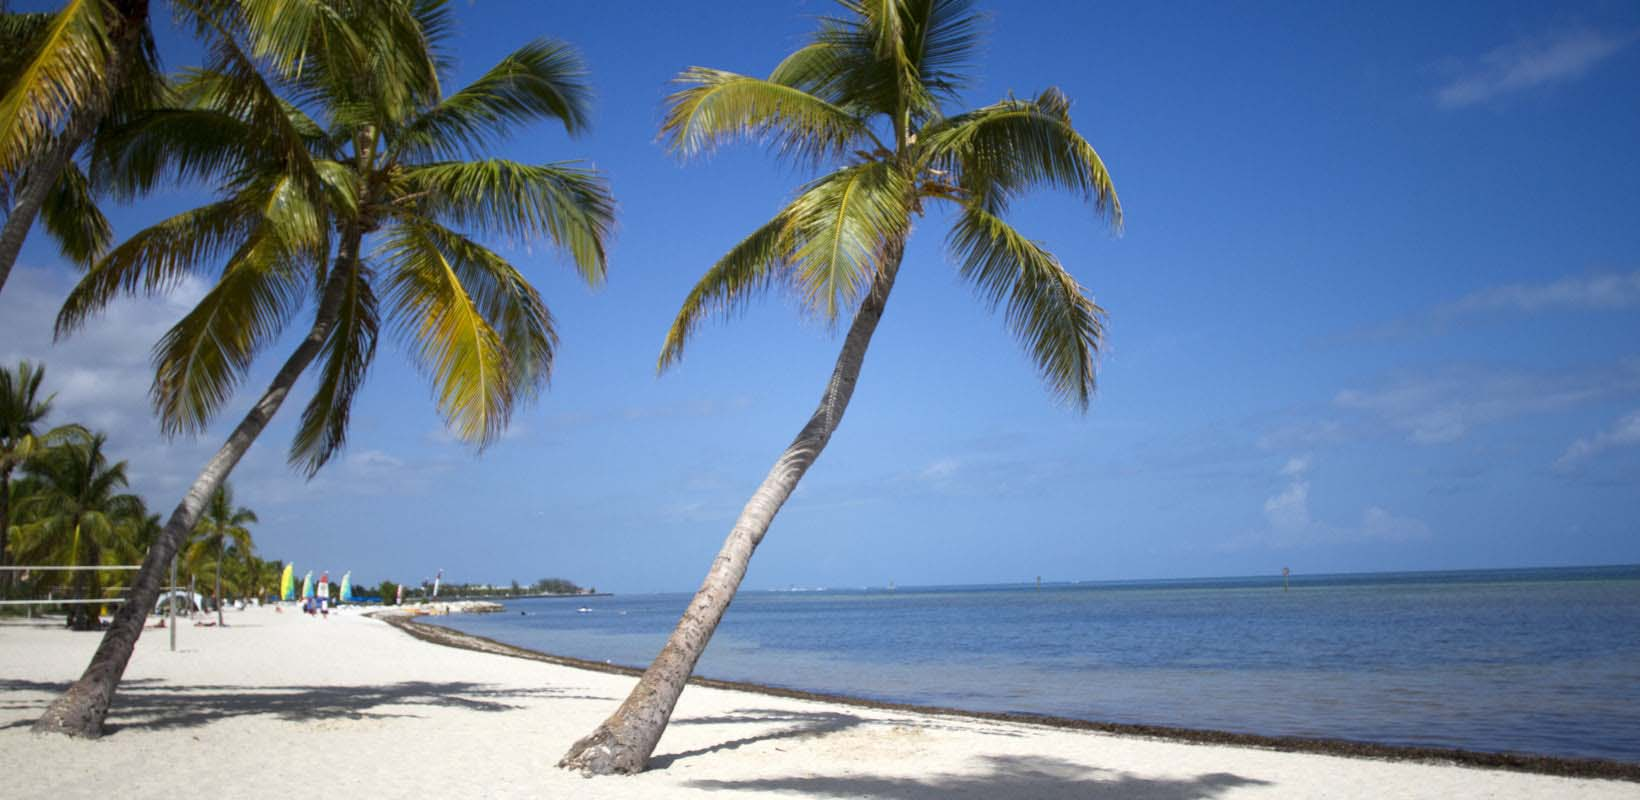 One-day tour of Key West from Miami